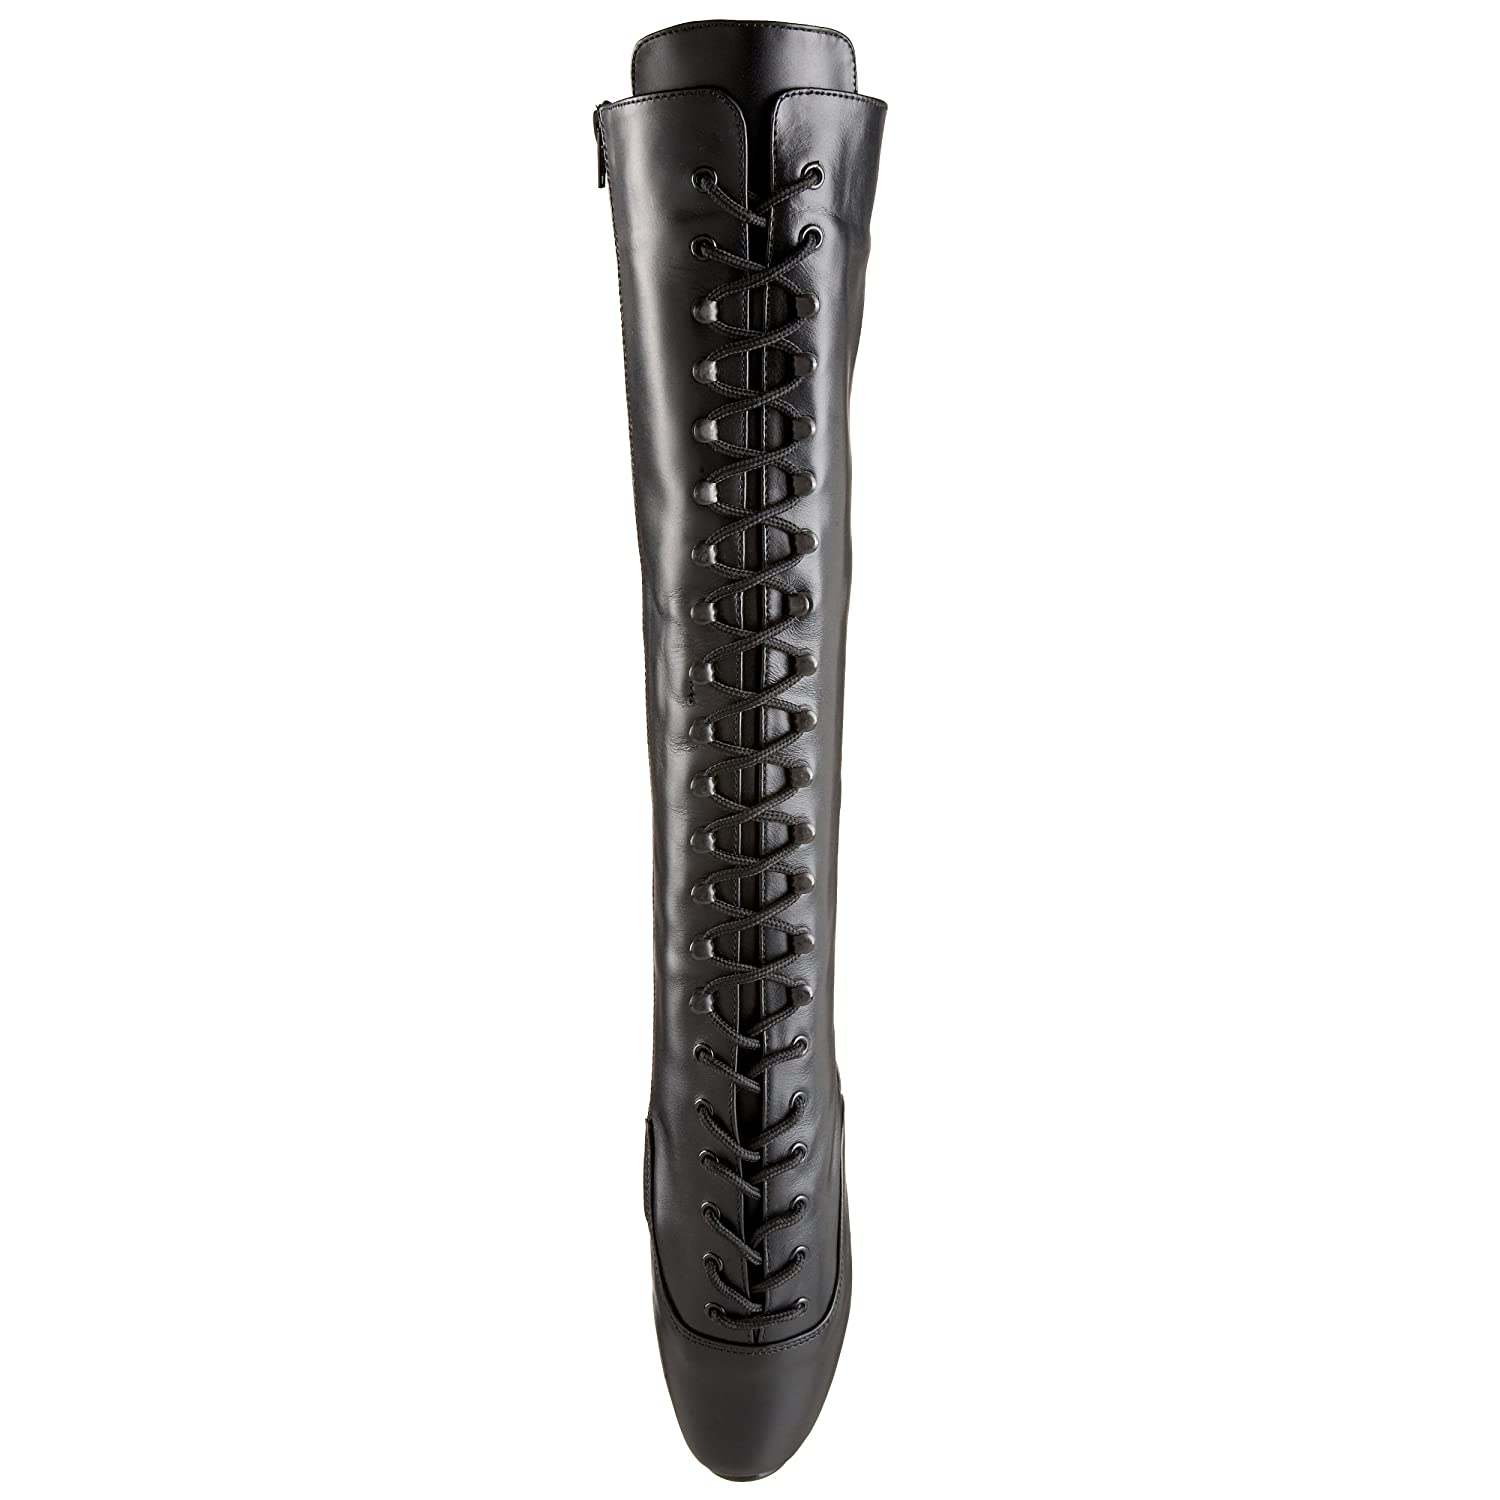 Pleaser B001U2XHEI Women's Ballet-2020 Knee-High Boot B001U2XHEI Pleaser 9 B(M) US|Black Leather 70f0e8